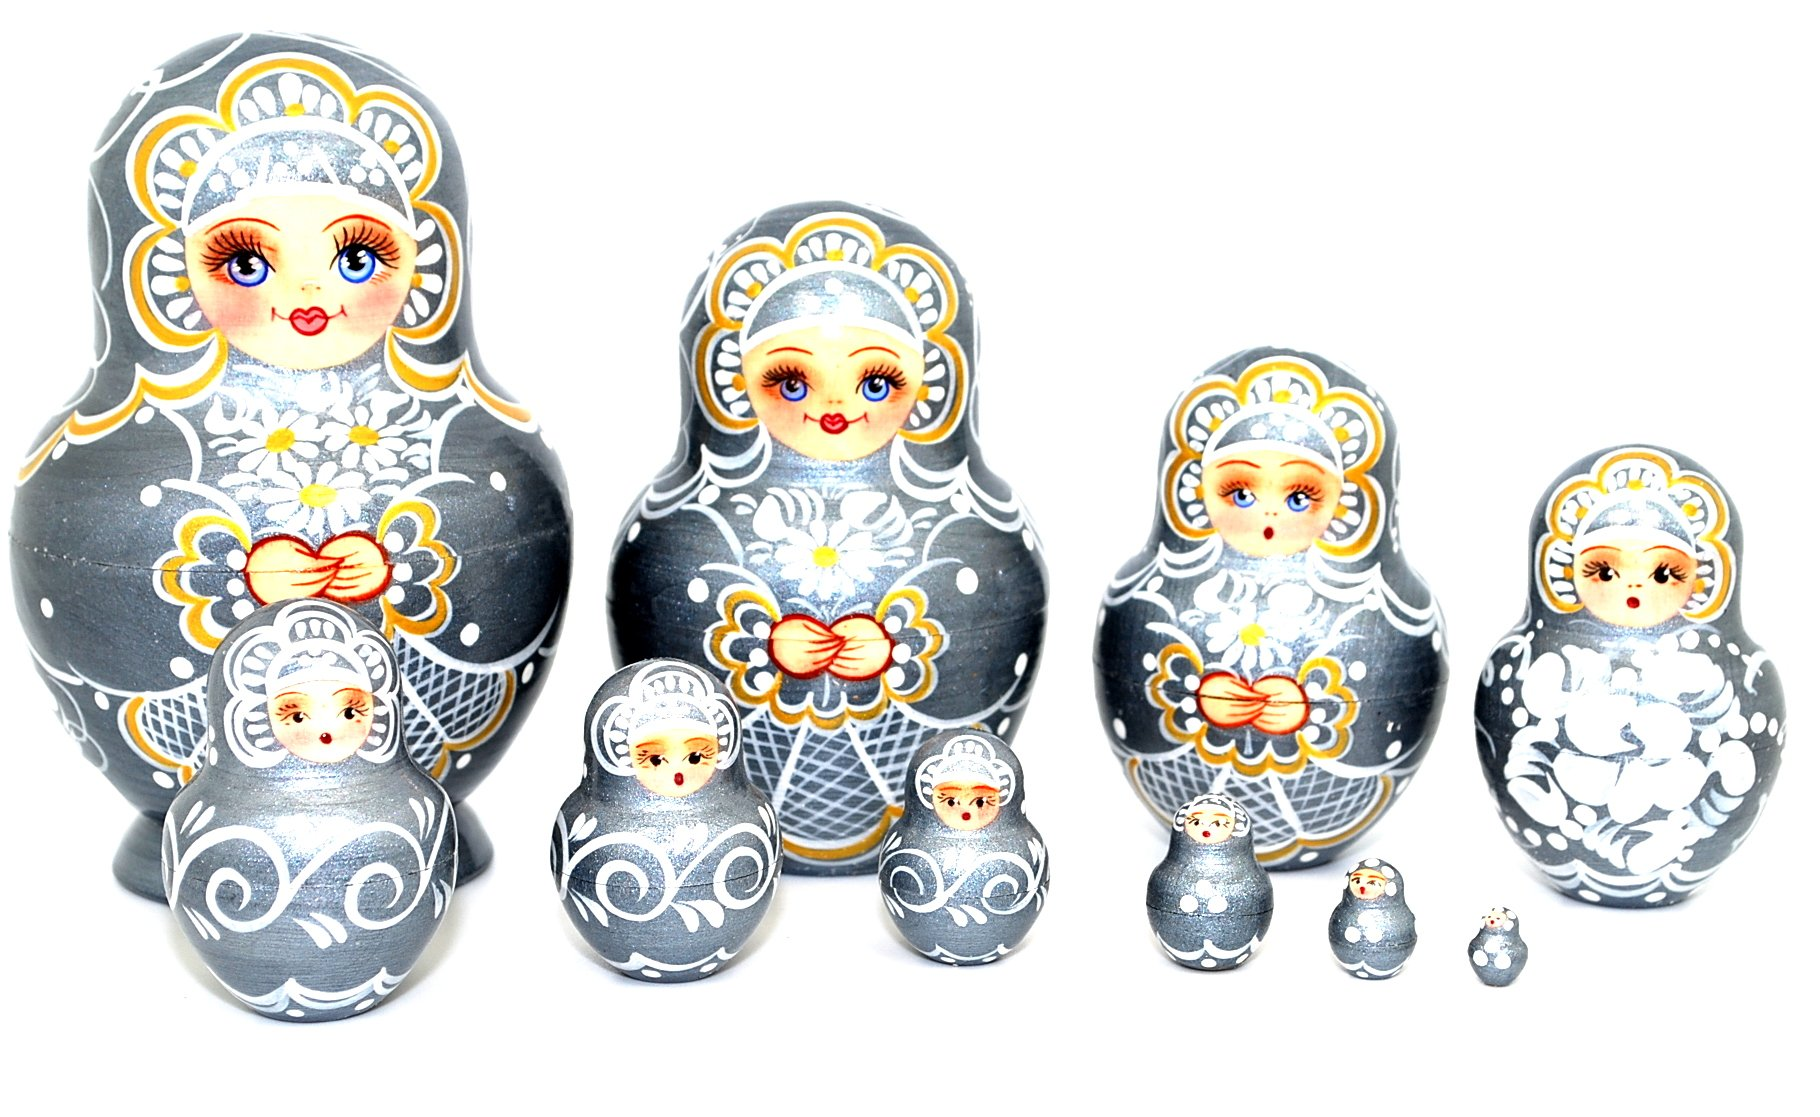 Unique Russian Hand Painted Handmade Silver Nesting Dolls Set of 10 Pcs Floral Artist Signed by GSZ (Image #1)